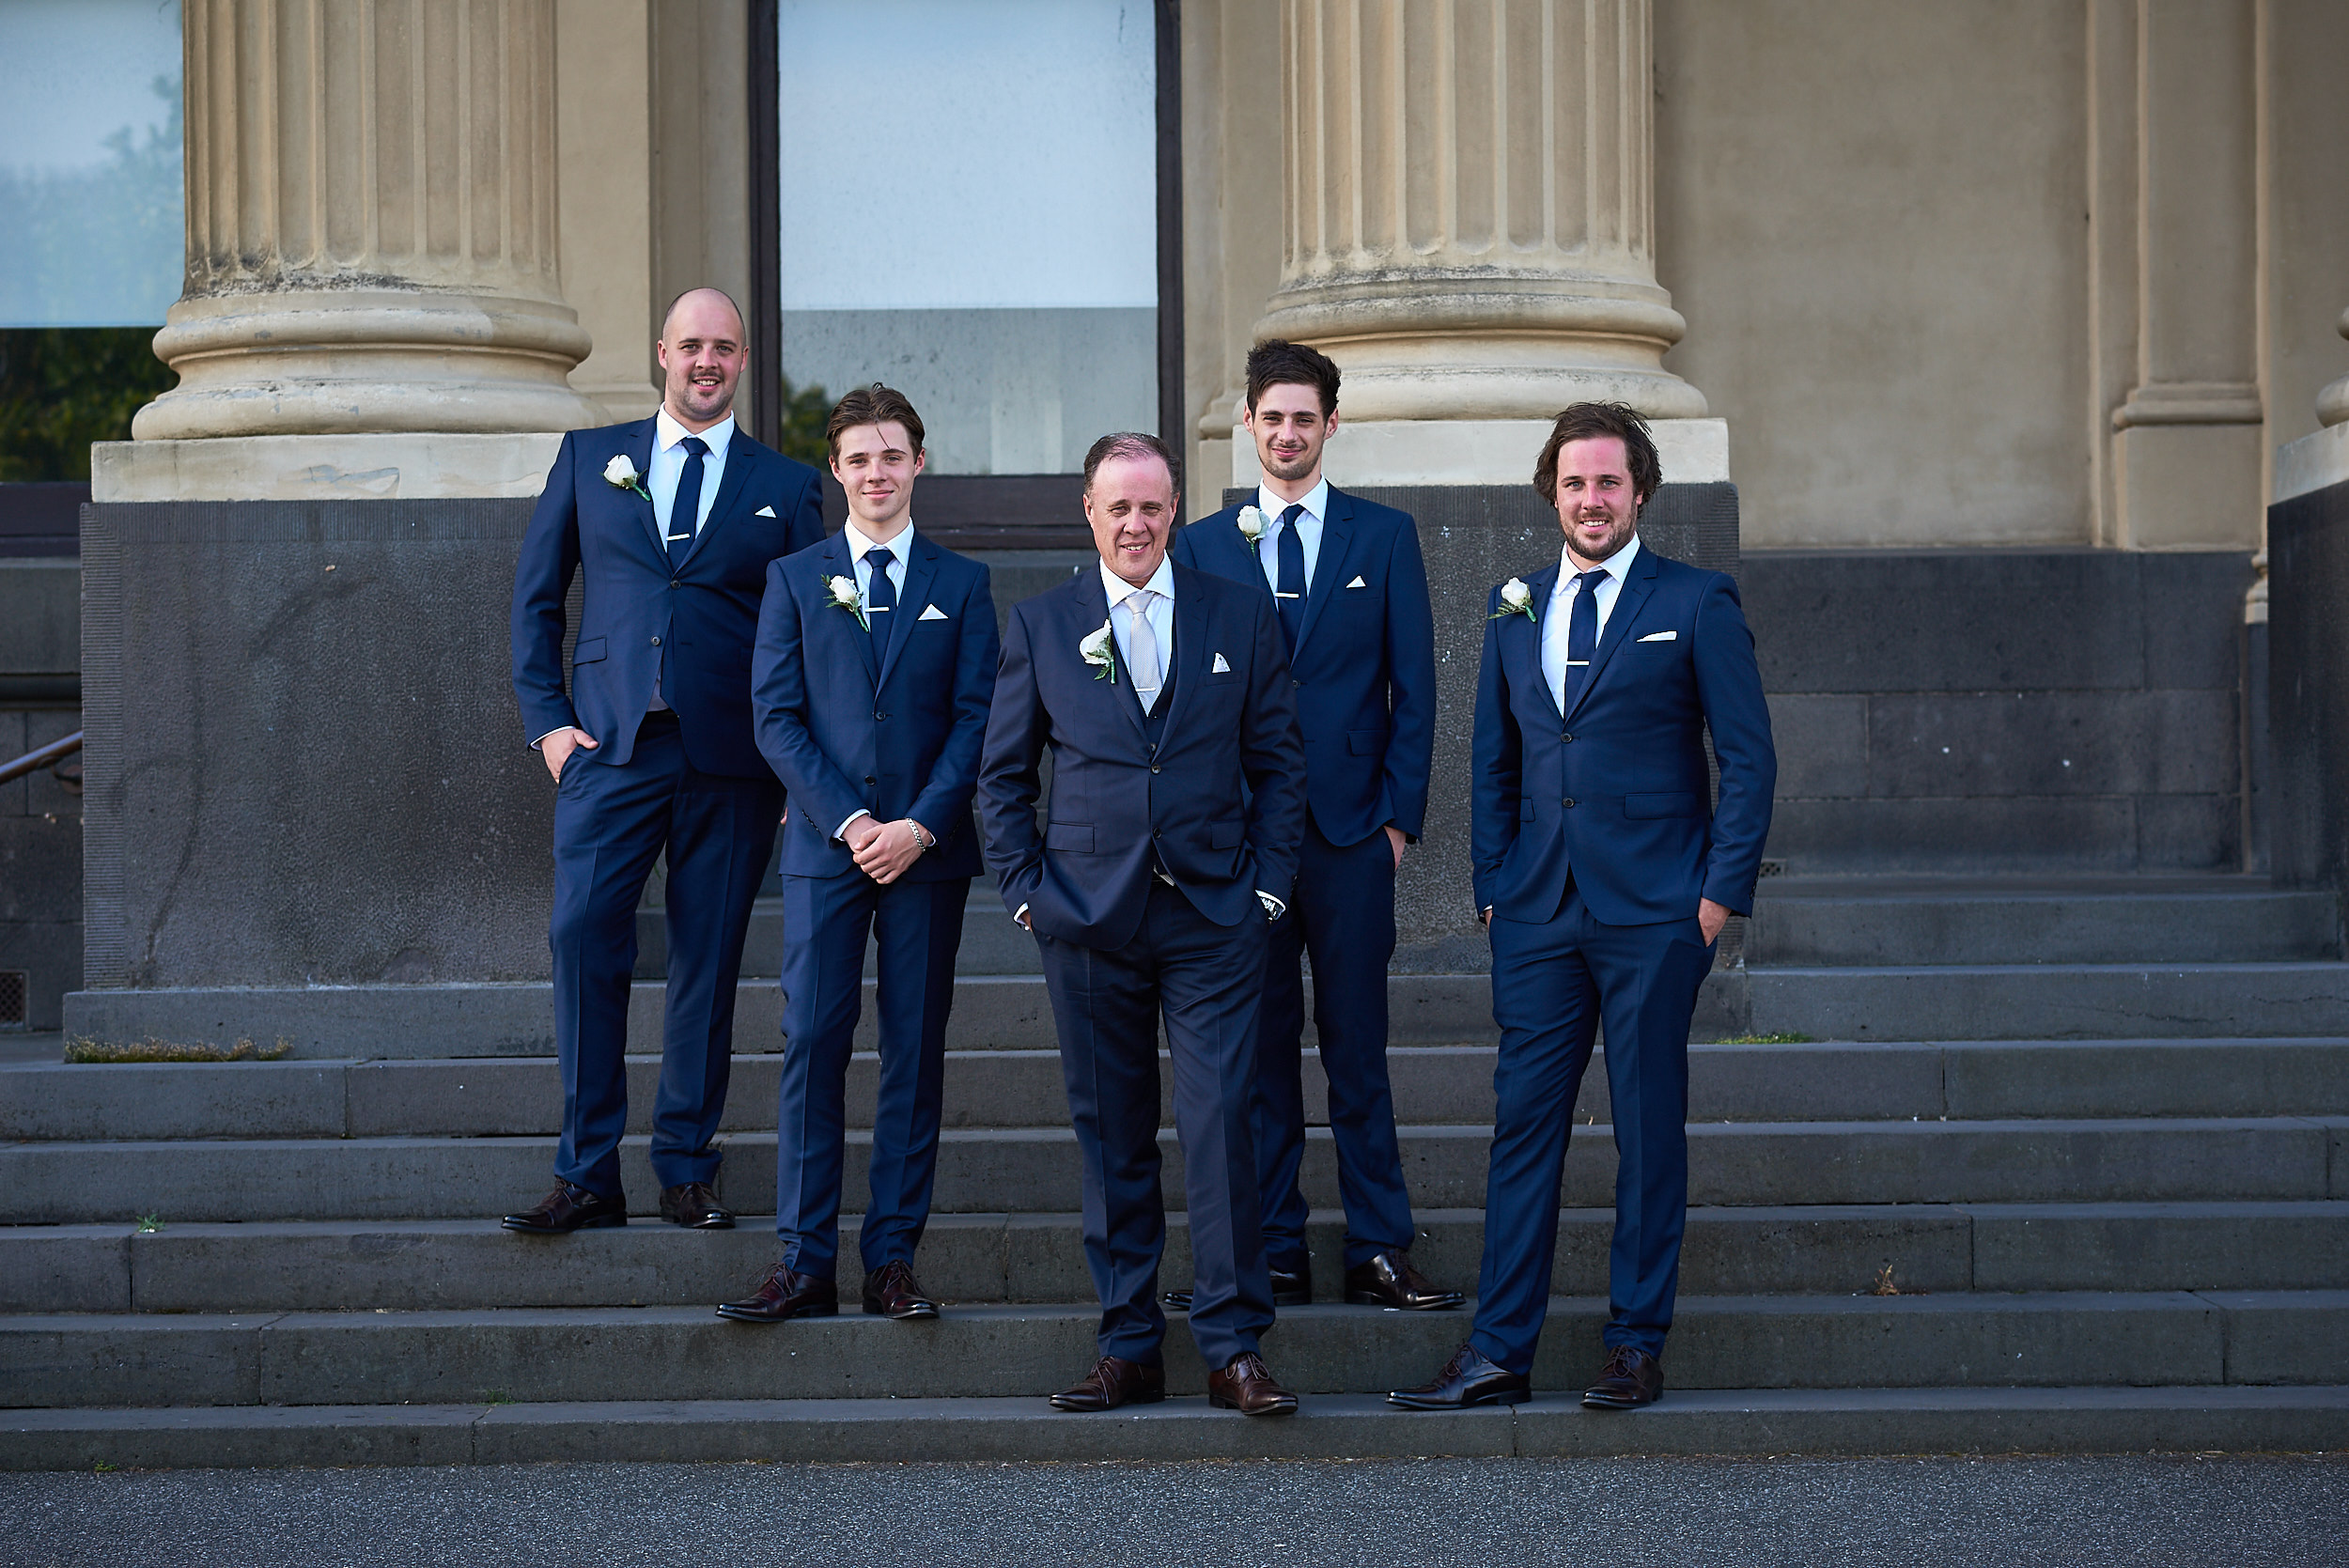 Groom with groomsmen on steps at Port Melbourne Town Hall non-hipster wedding.jpg